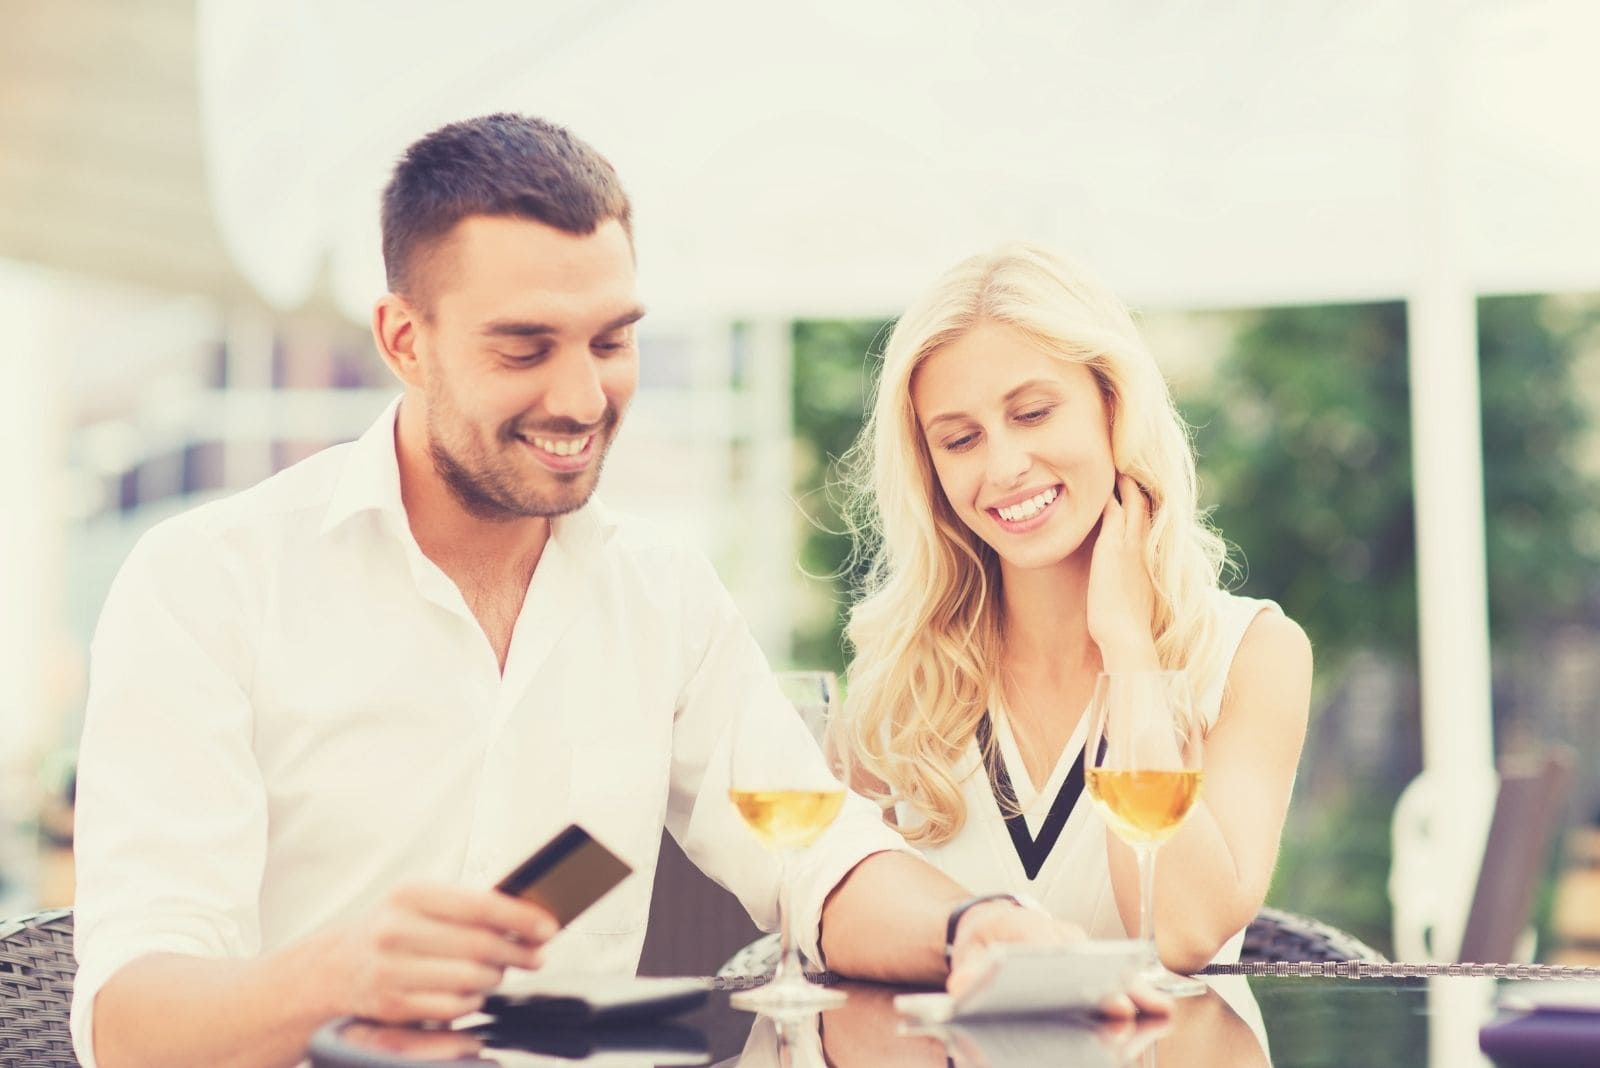 happy couple dating looking at the score card or credit card and smiling